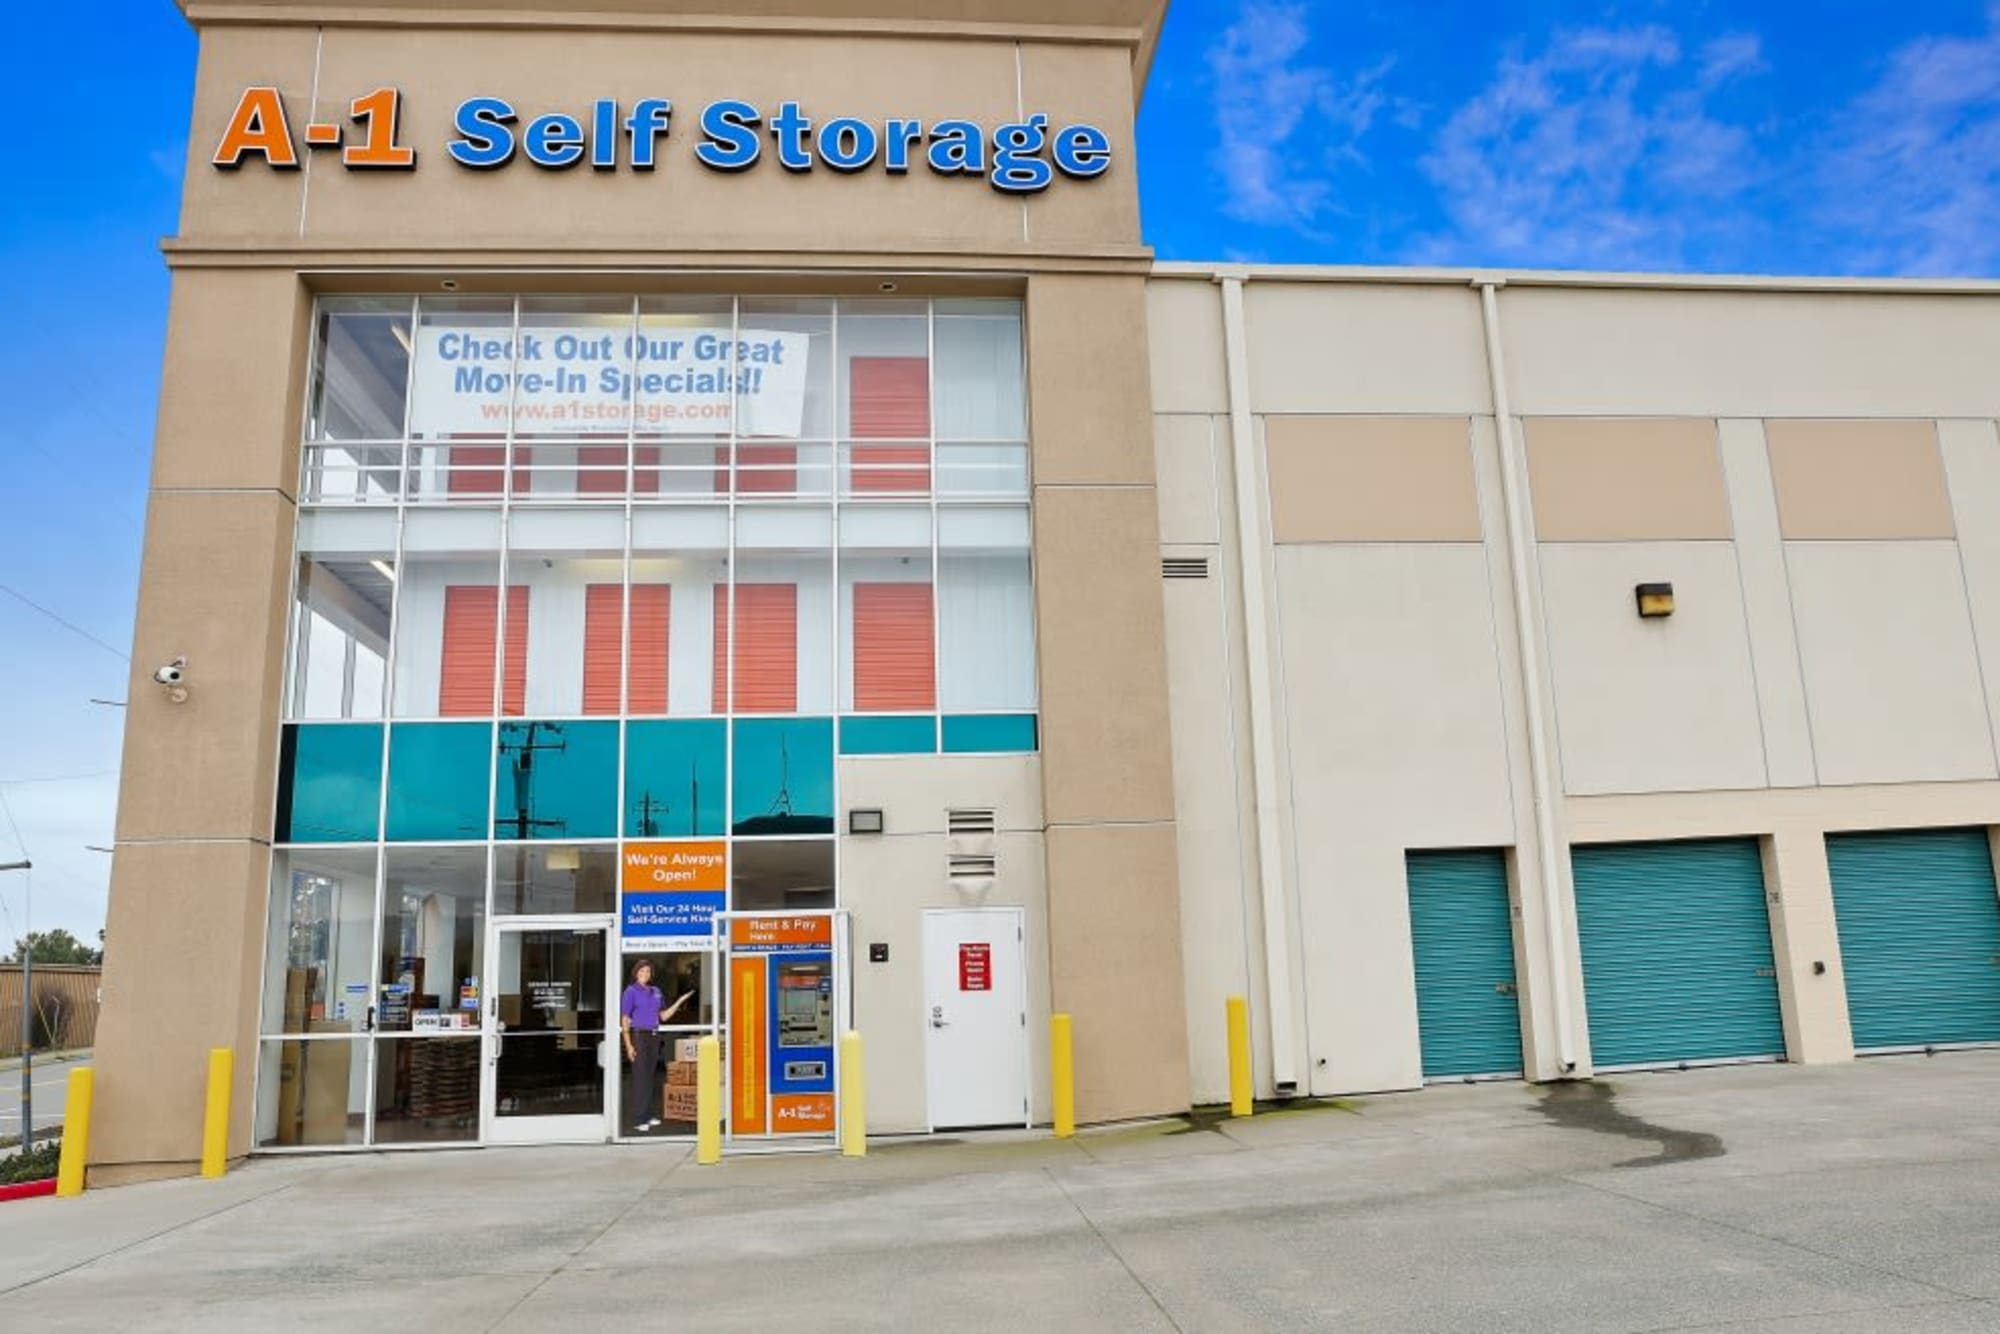 The front of our A-1 Self Storage store in Oakland, California